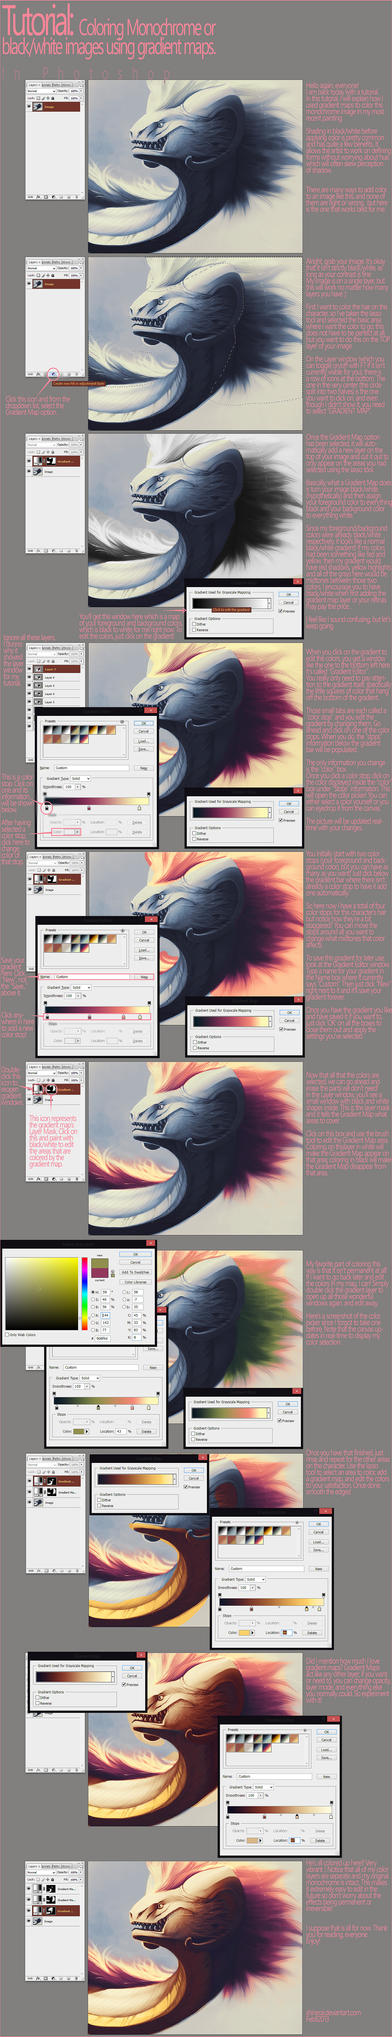 Tutorial: Adding Color With Gradient Maps by Shinerai